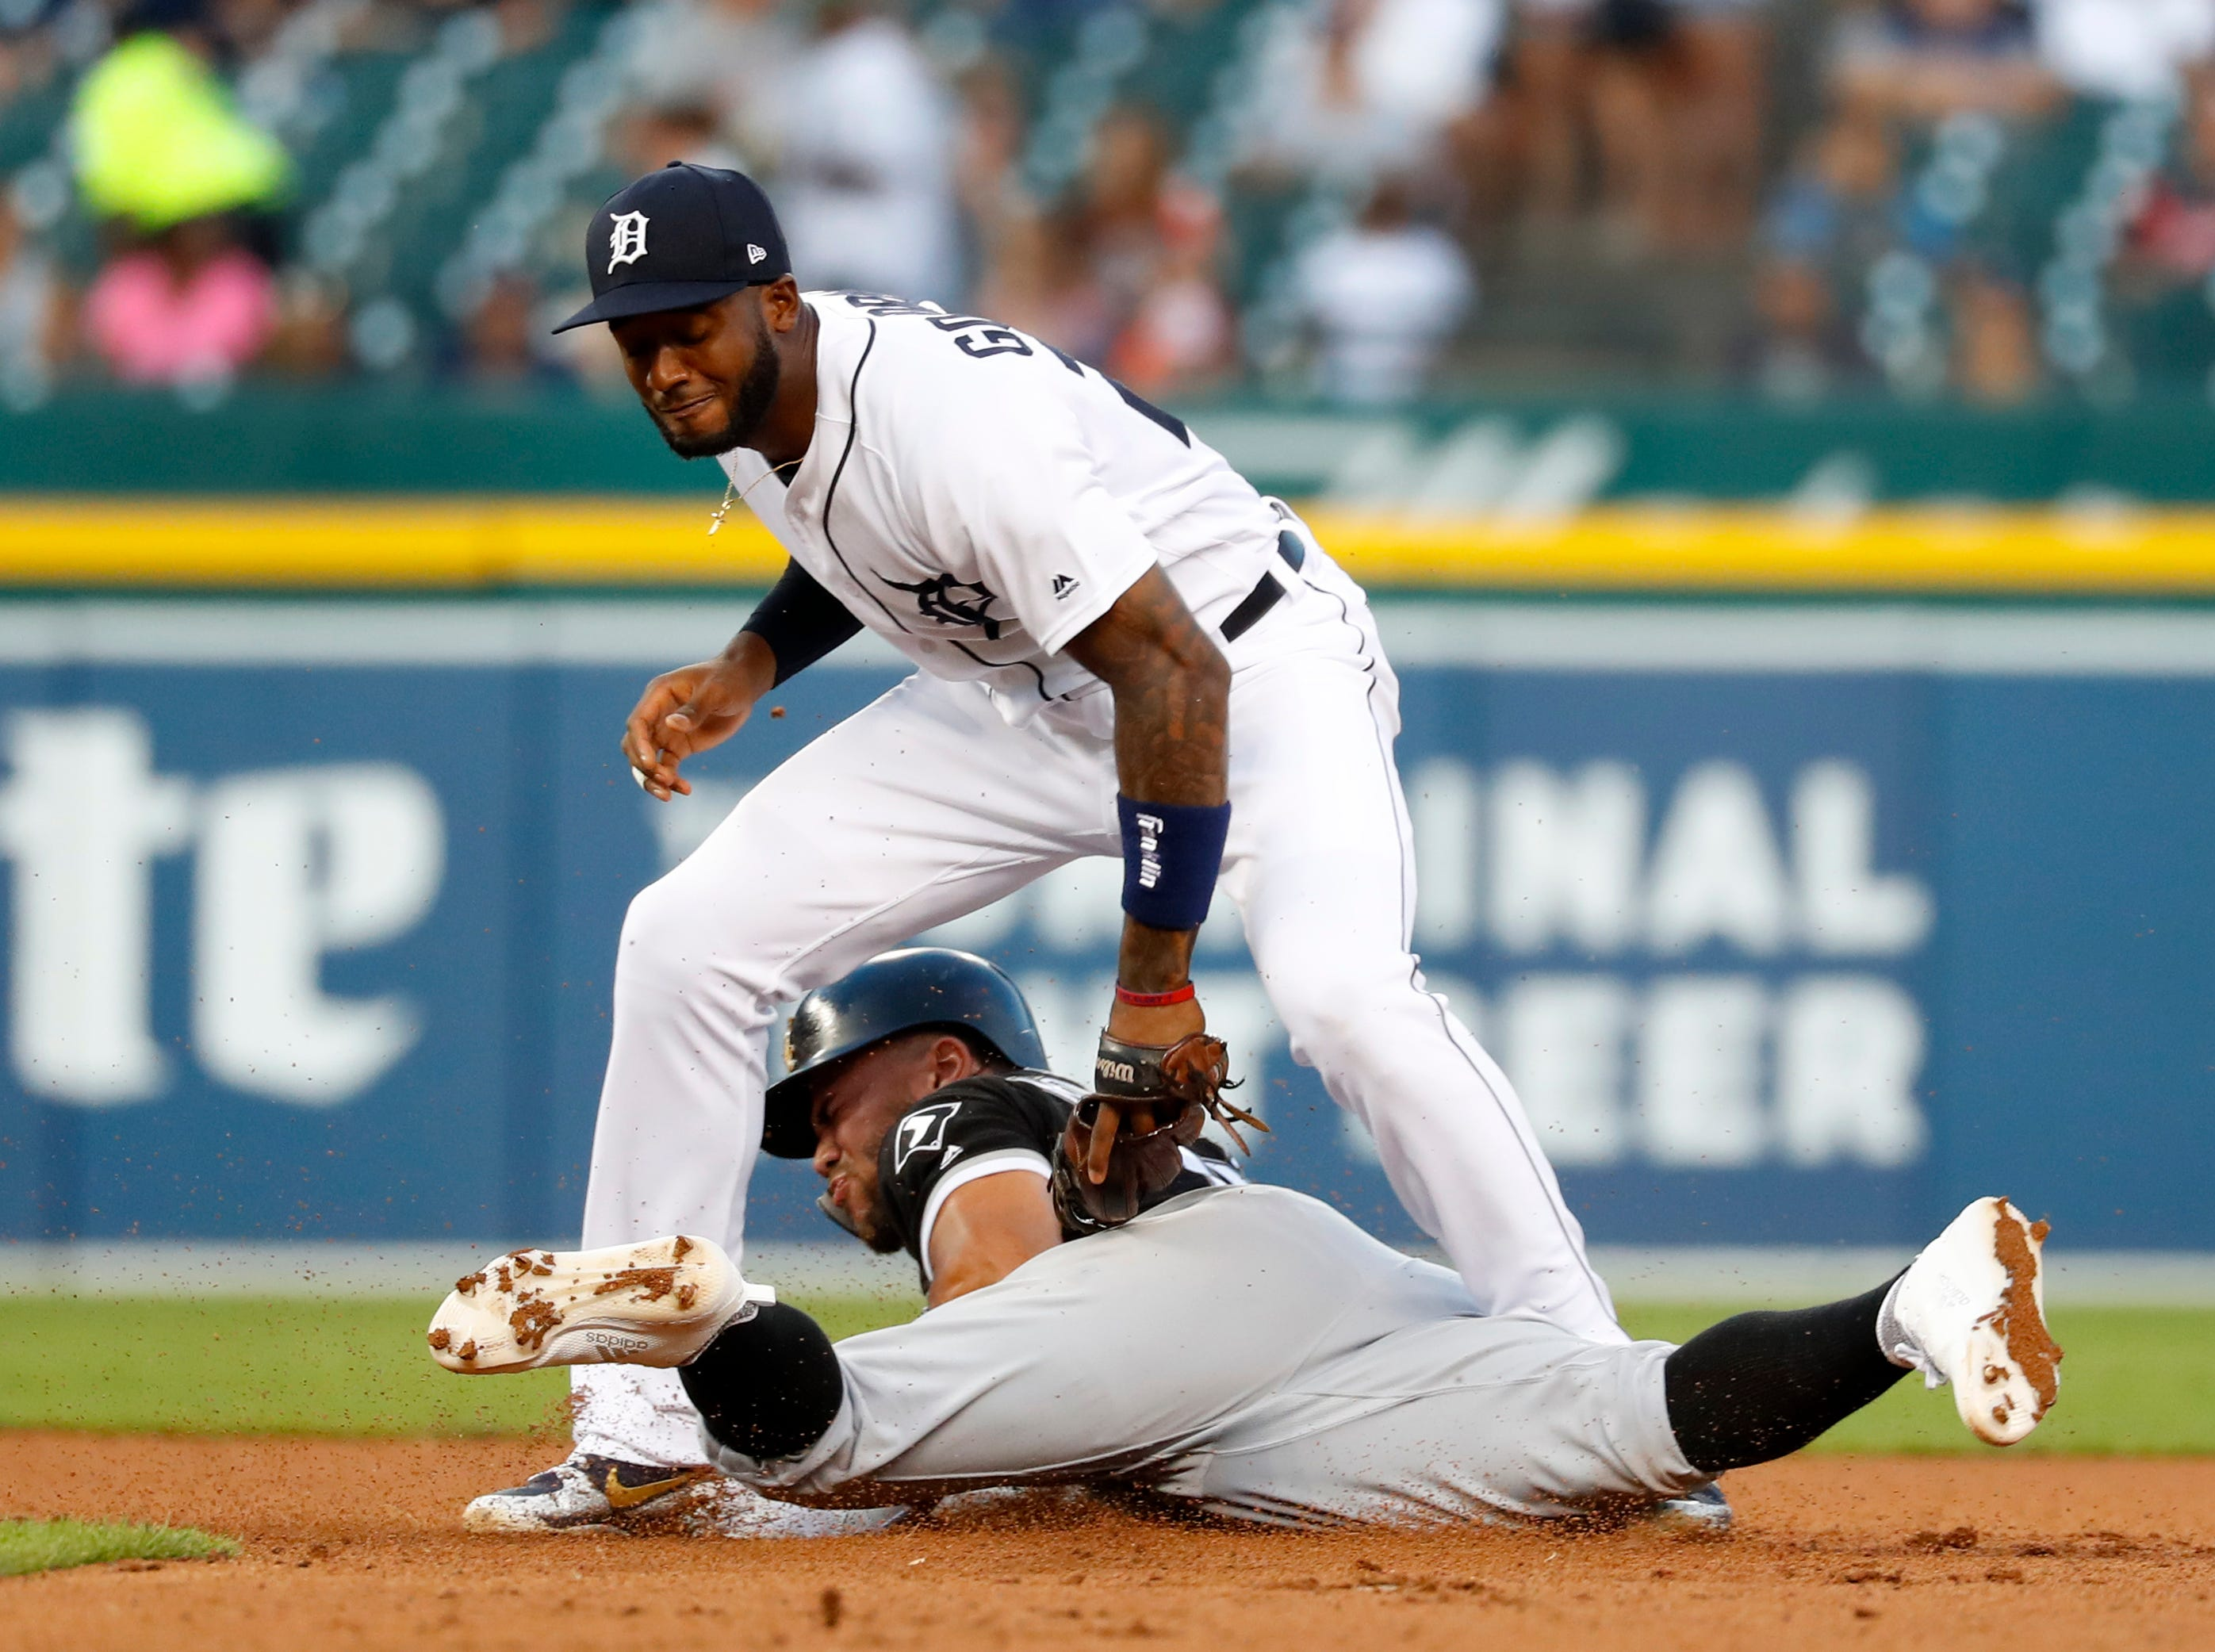 Detroit Tigers second baseman Niko Goodrum tags Chicago White Sox's Yoan Moncada out attempting to steal second base in the fourth inning.